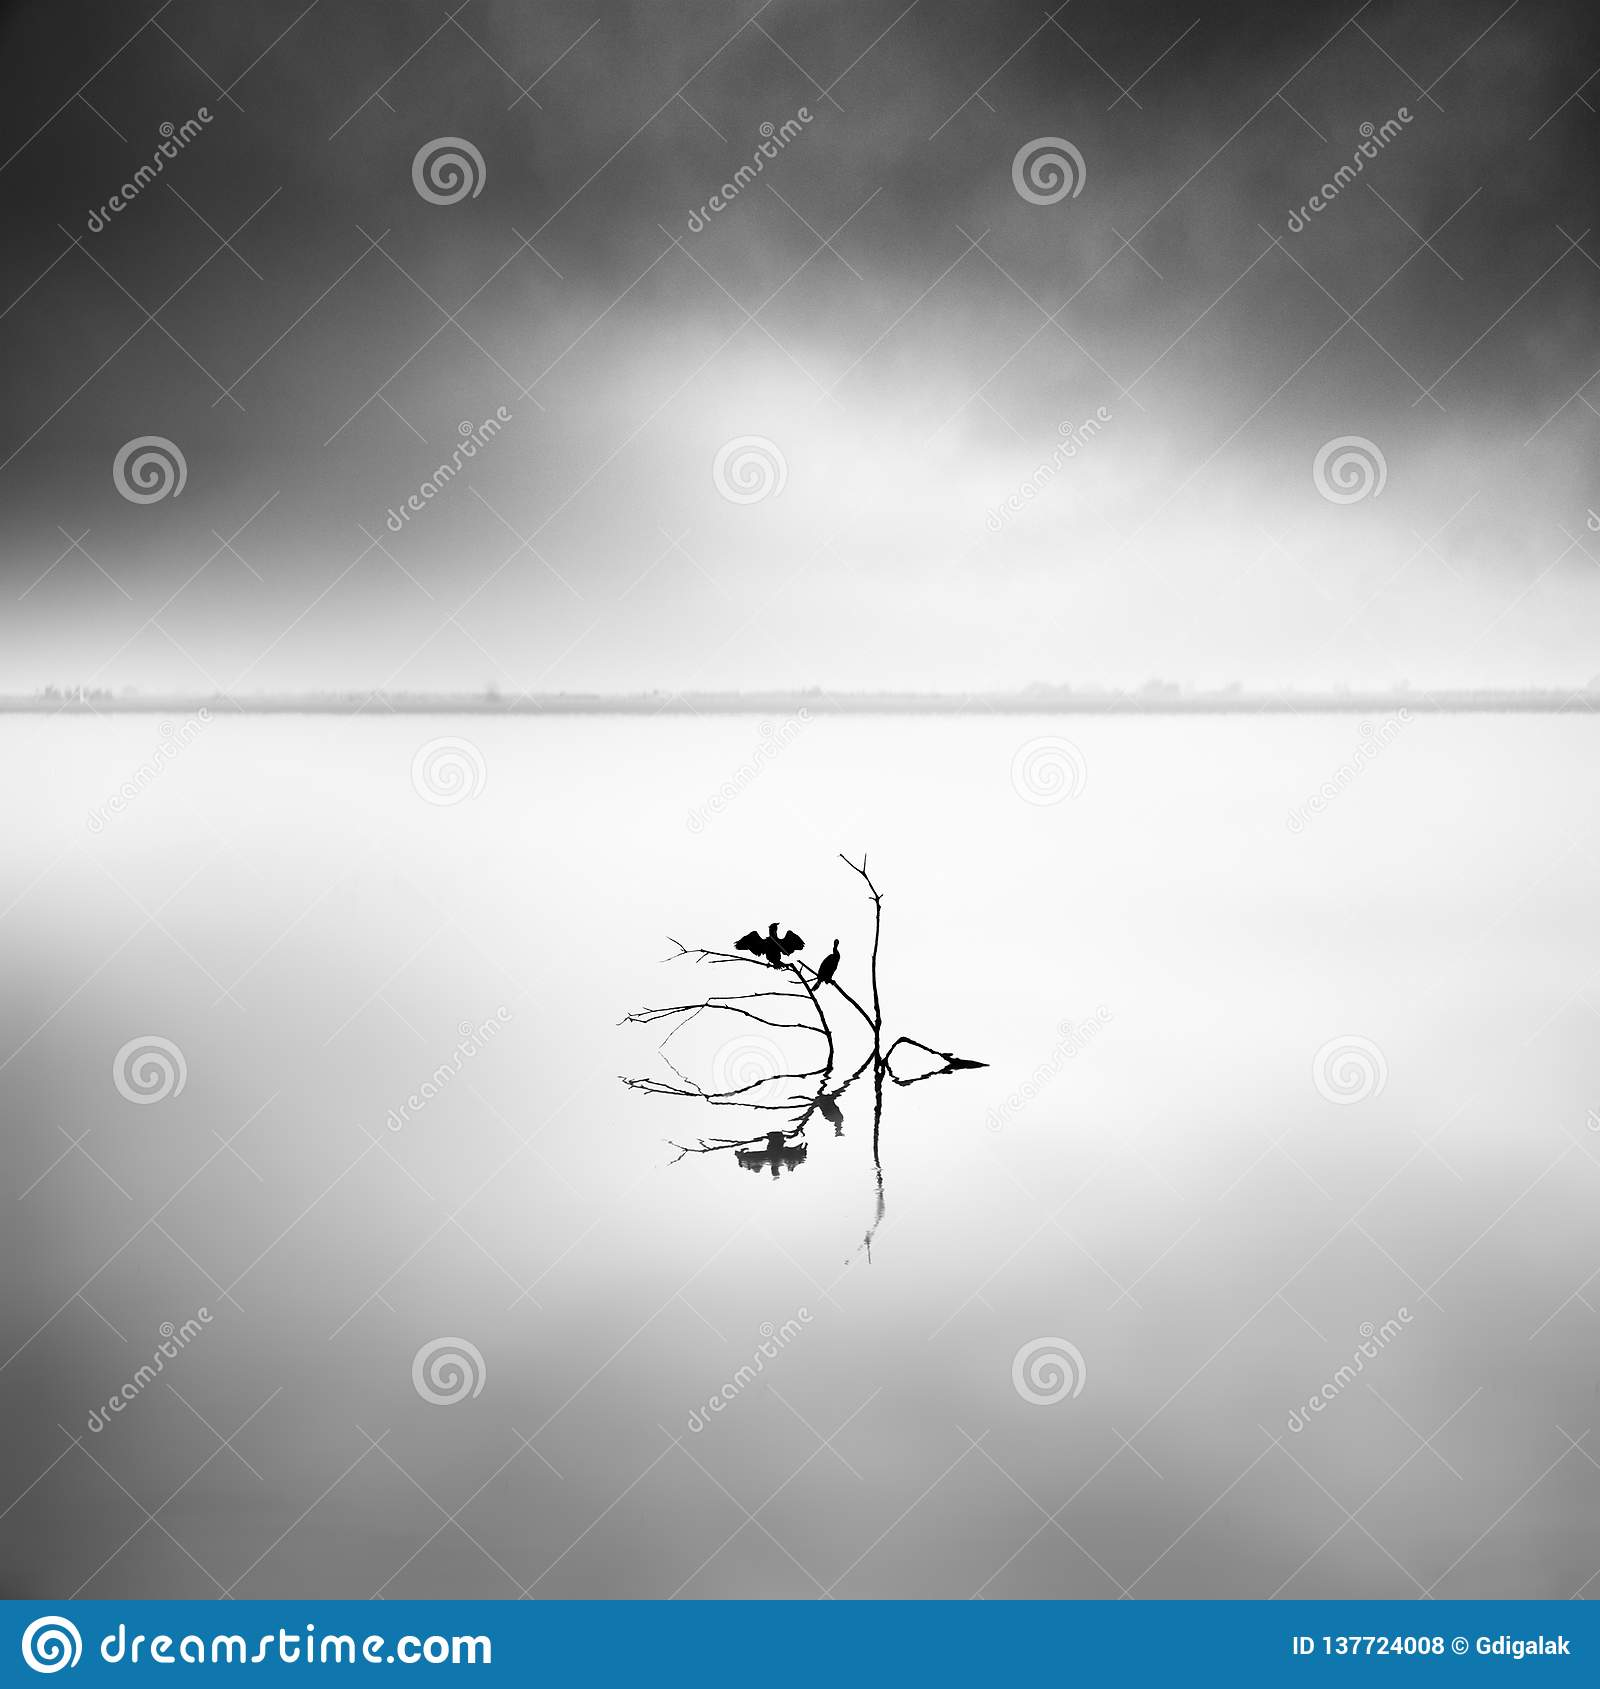 Minimal waterscape with plants and birds in the water